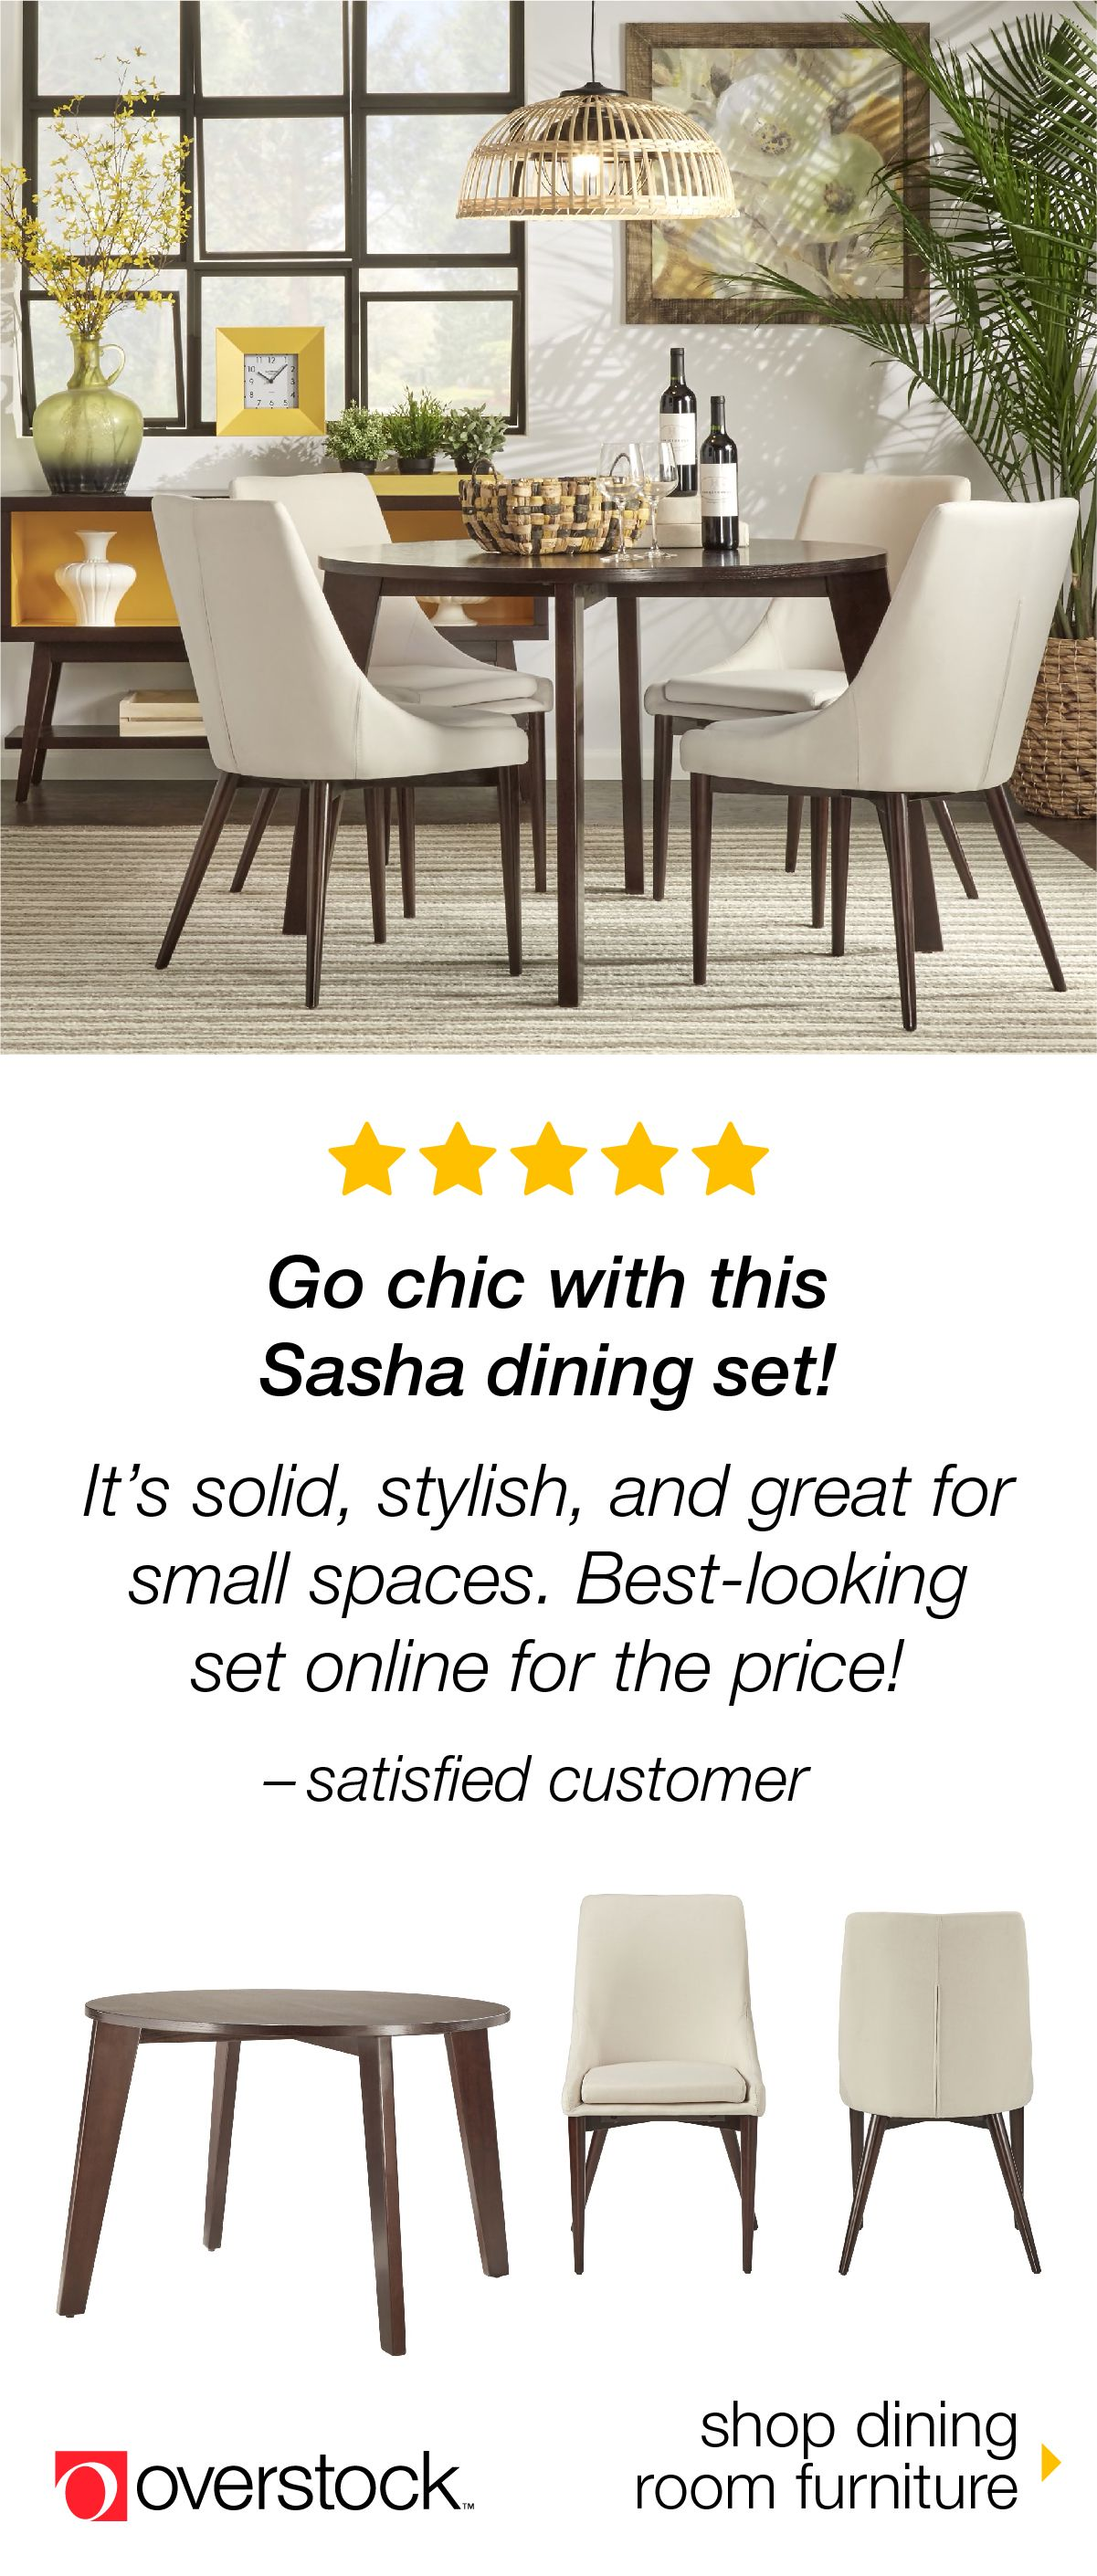 Shop Our Selection Of Dining Room Furniture By Size Material Color And Style To Find The Best Fit At Lowest Price